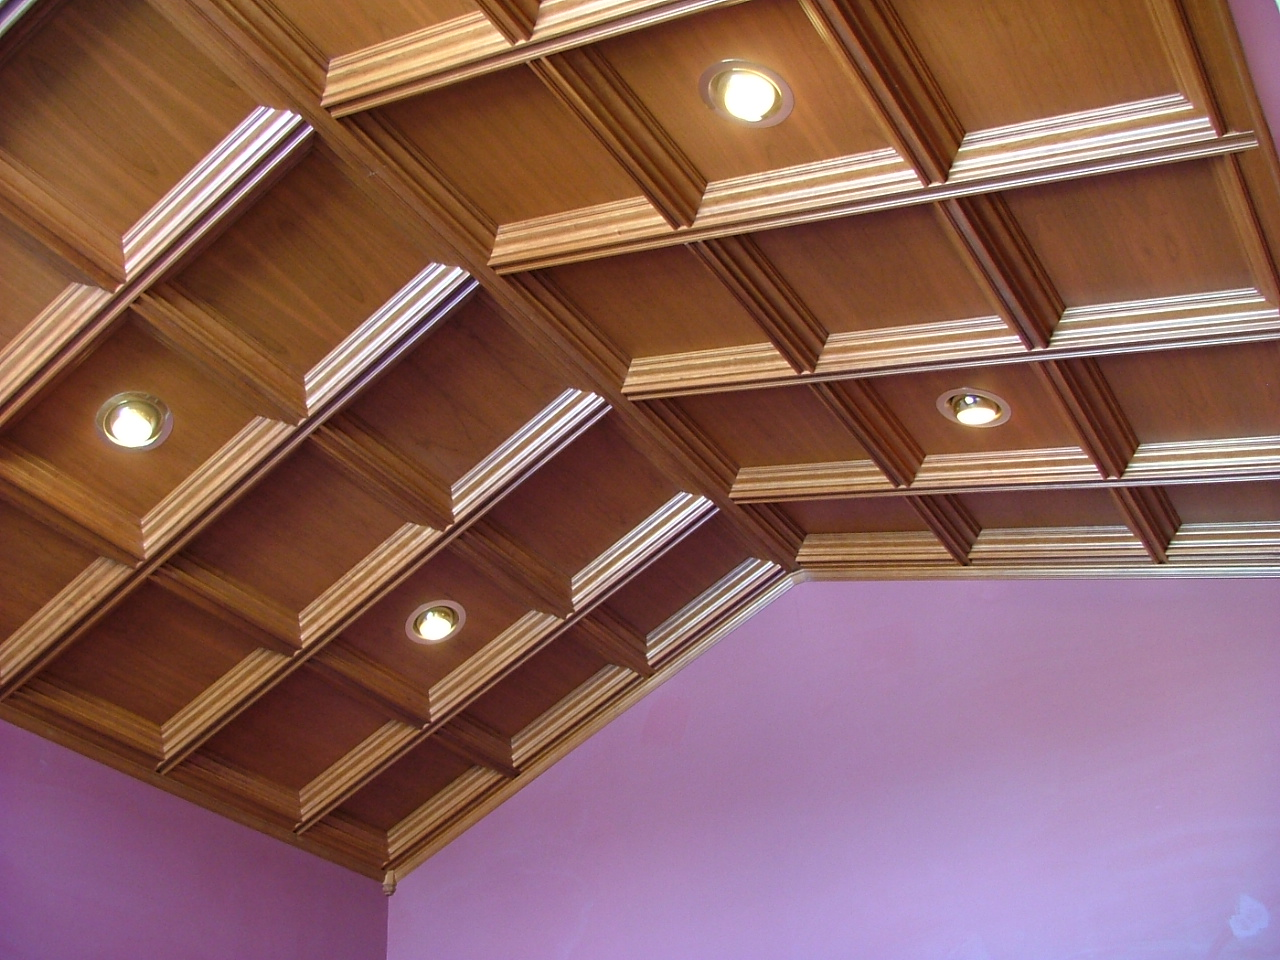 Woodgrid coffered ceilings by midwestern wood products co wood photo 5 washington nationals ceiling dailygadgetfo Image collections